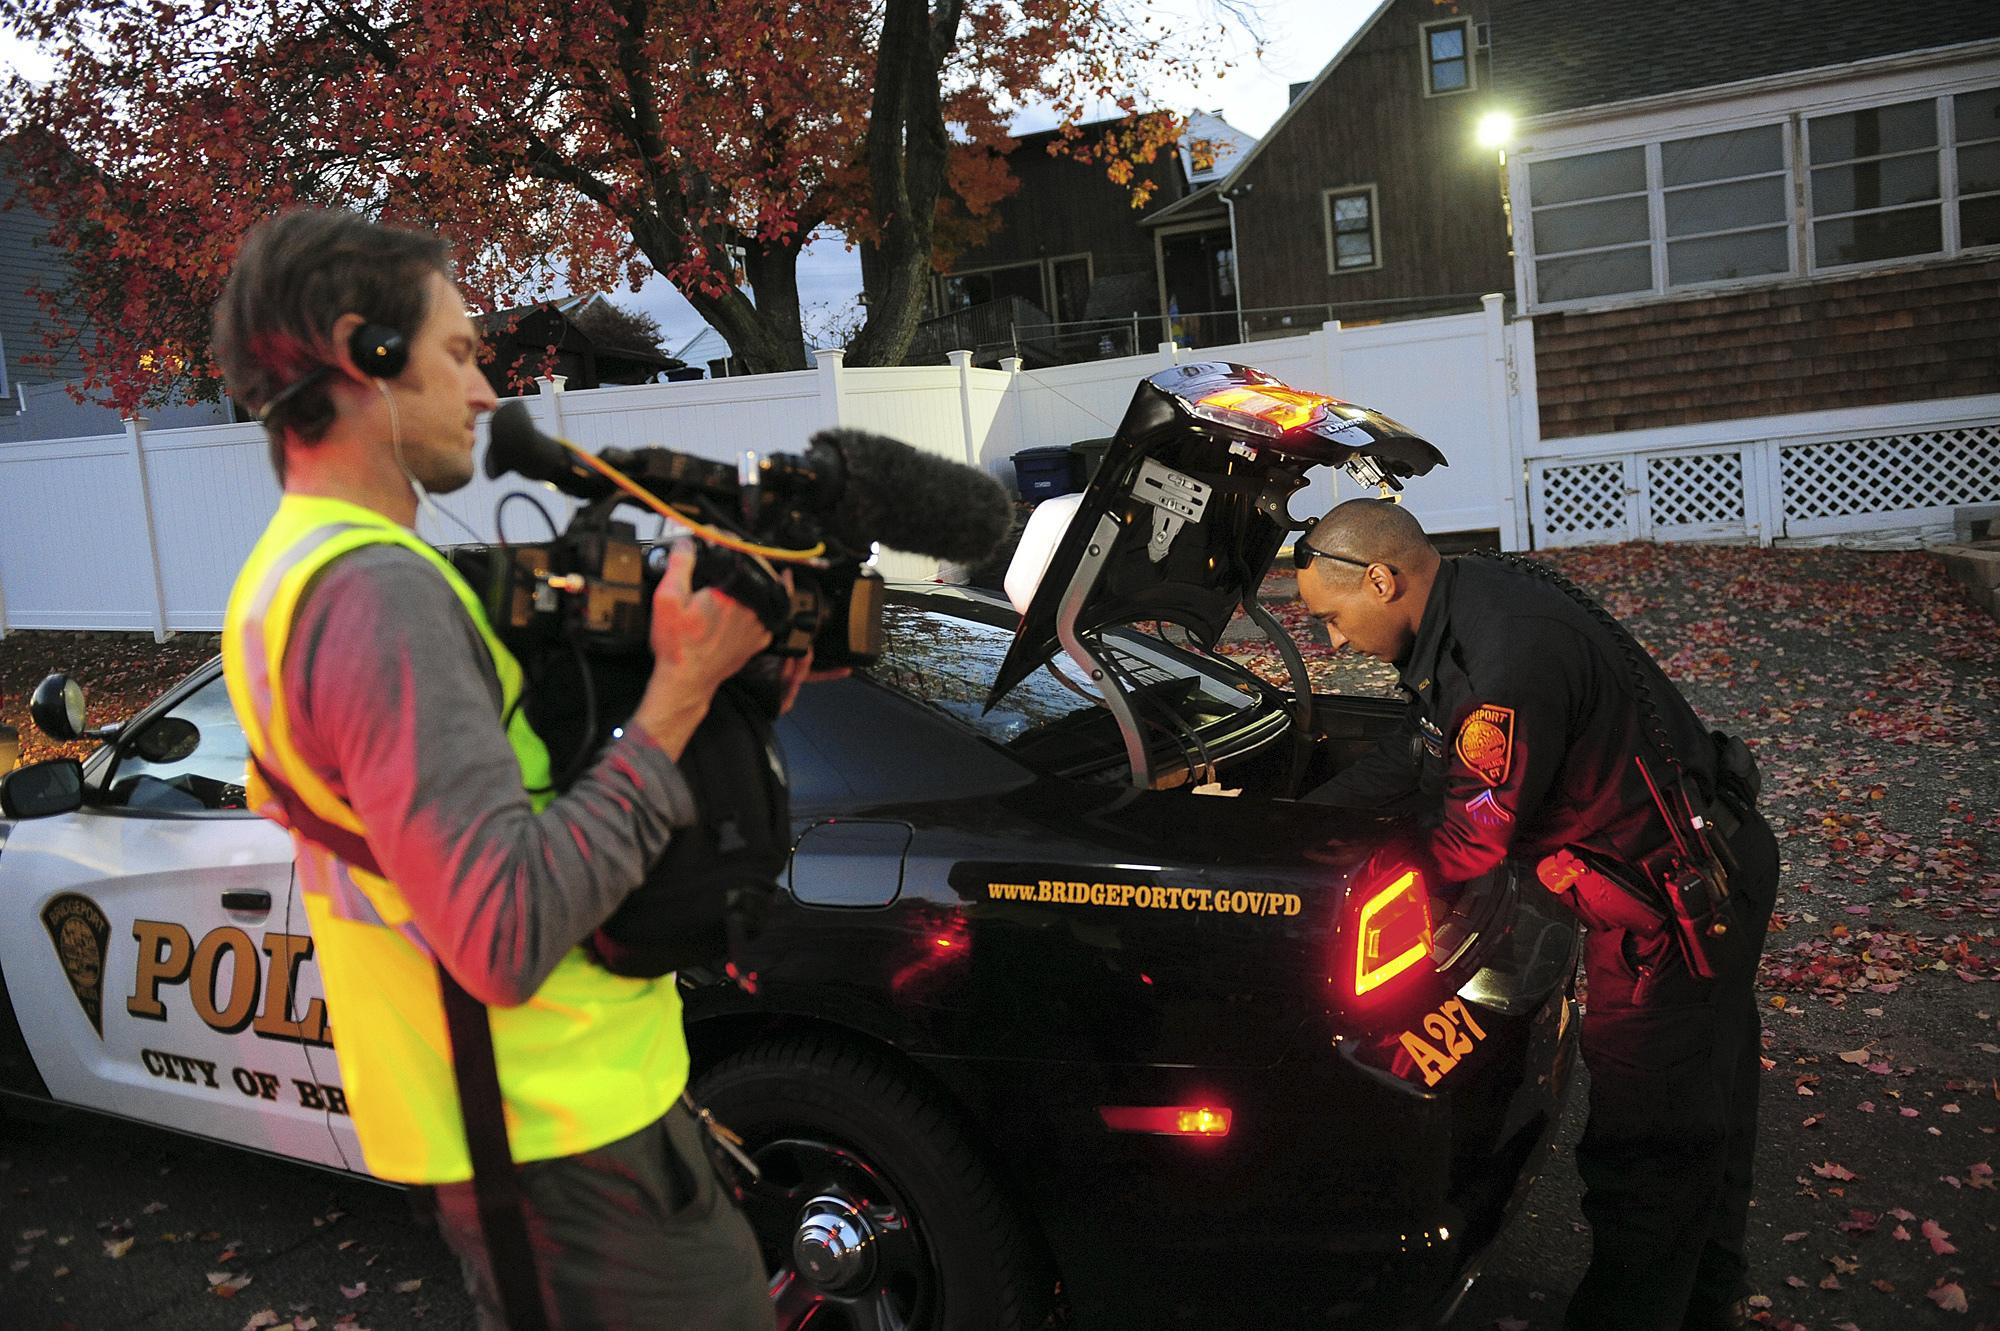 Live PD' airs its 100th episode, but sees checkered legacy with some